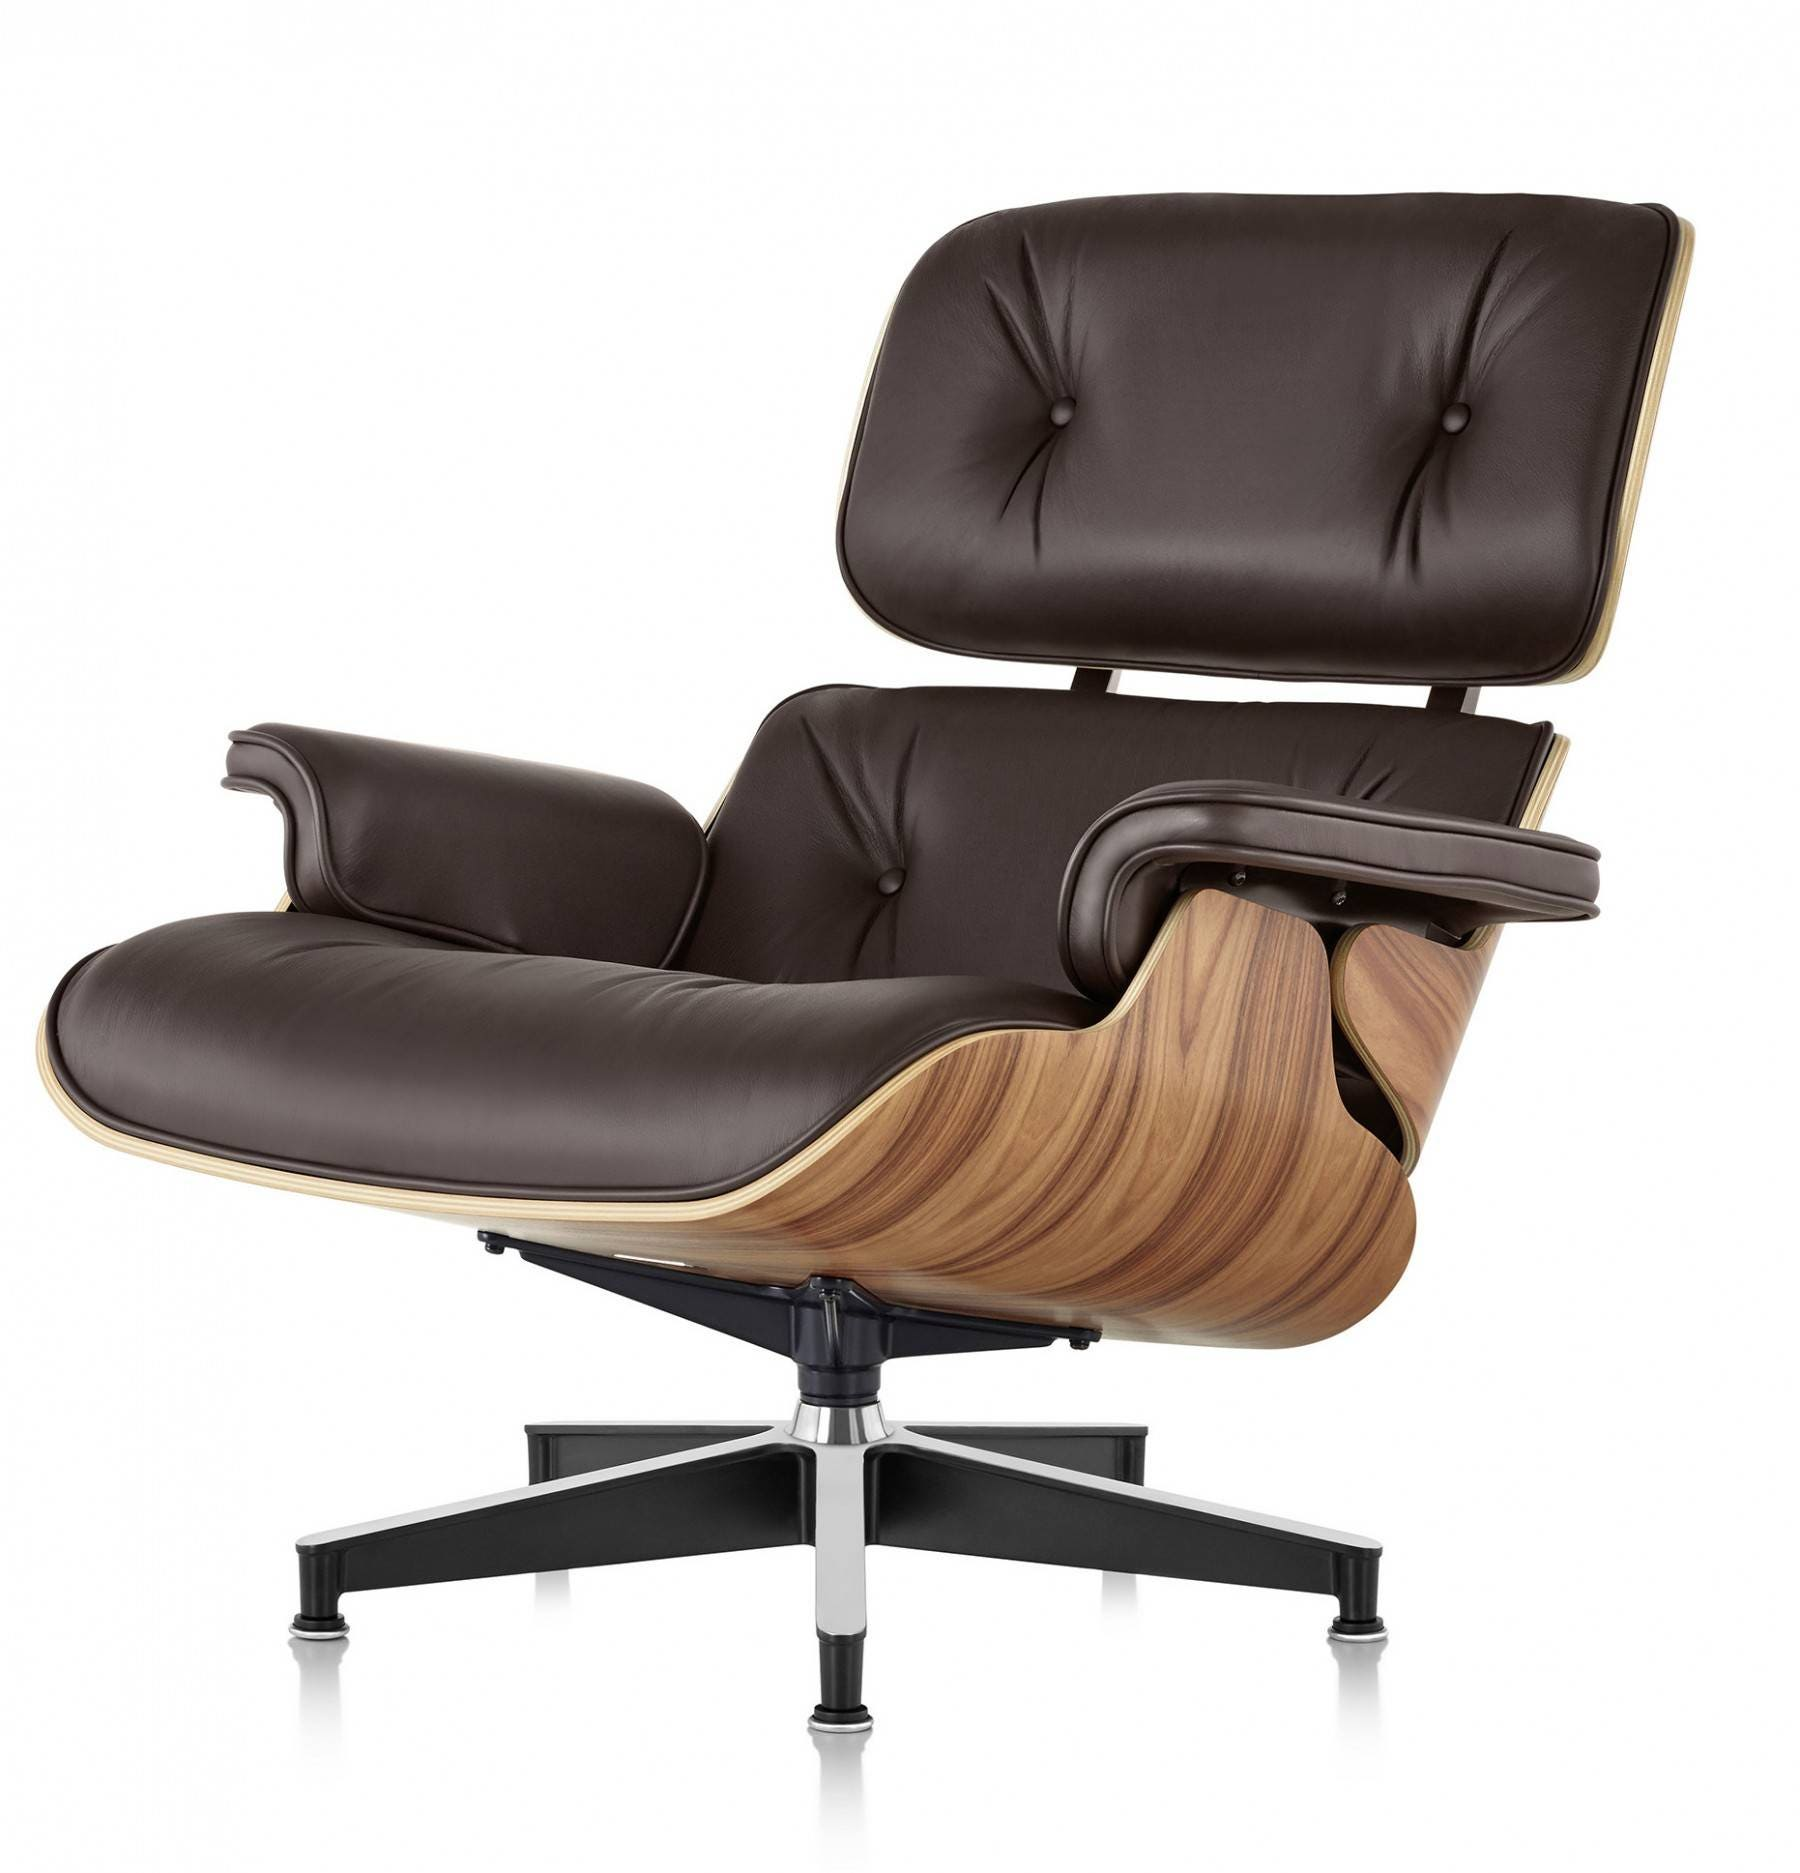 ... Eames® Lounge Chair. 1